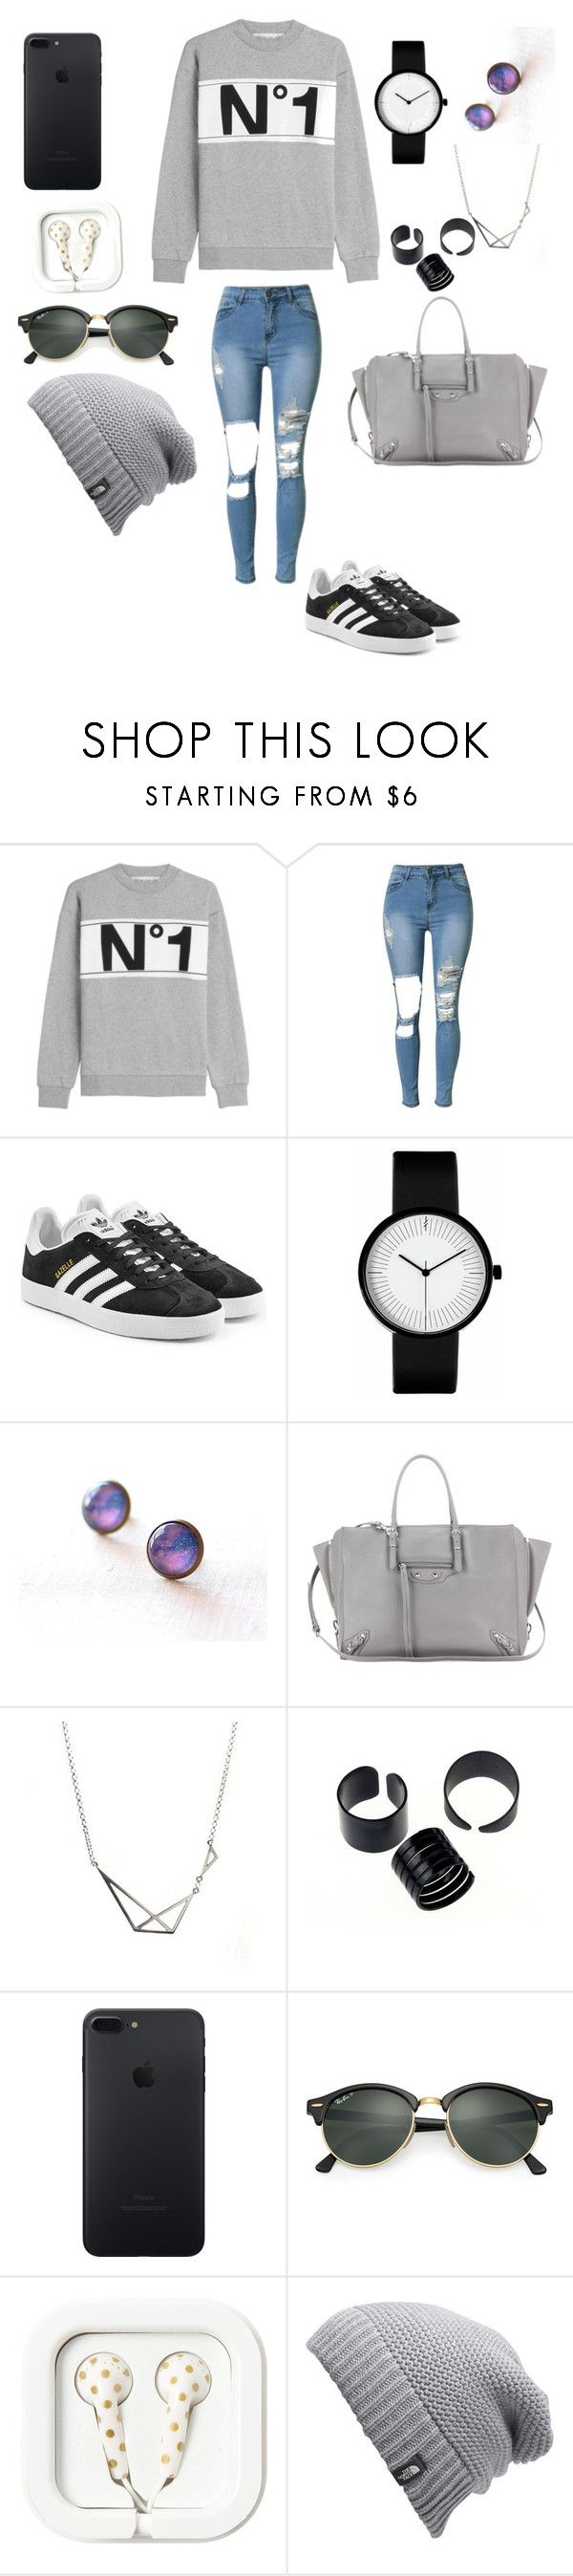 """""""Untitled #373"""" by shoialshammeri ❤ liked on Polyvore featuring Être Cécile, adidas Originals, Balenciaga, Ray-Ban and The North Face"""